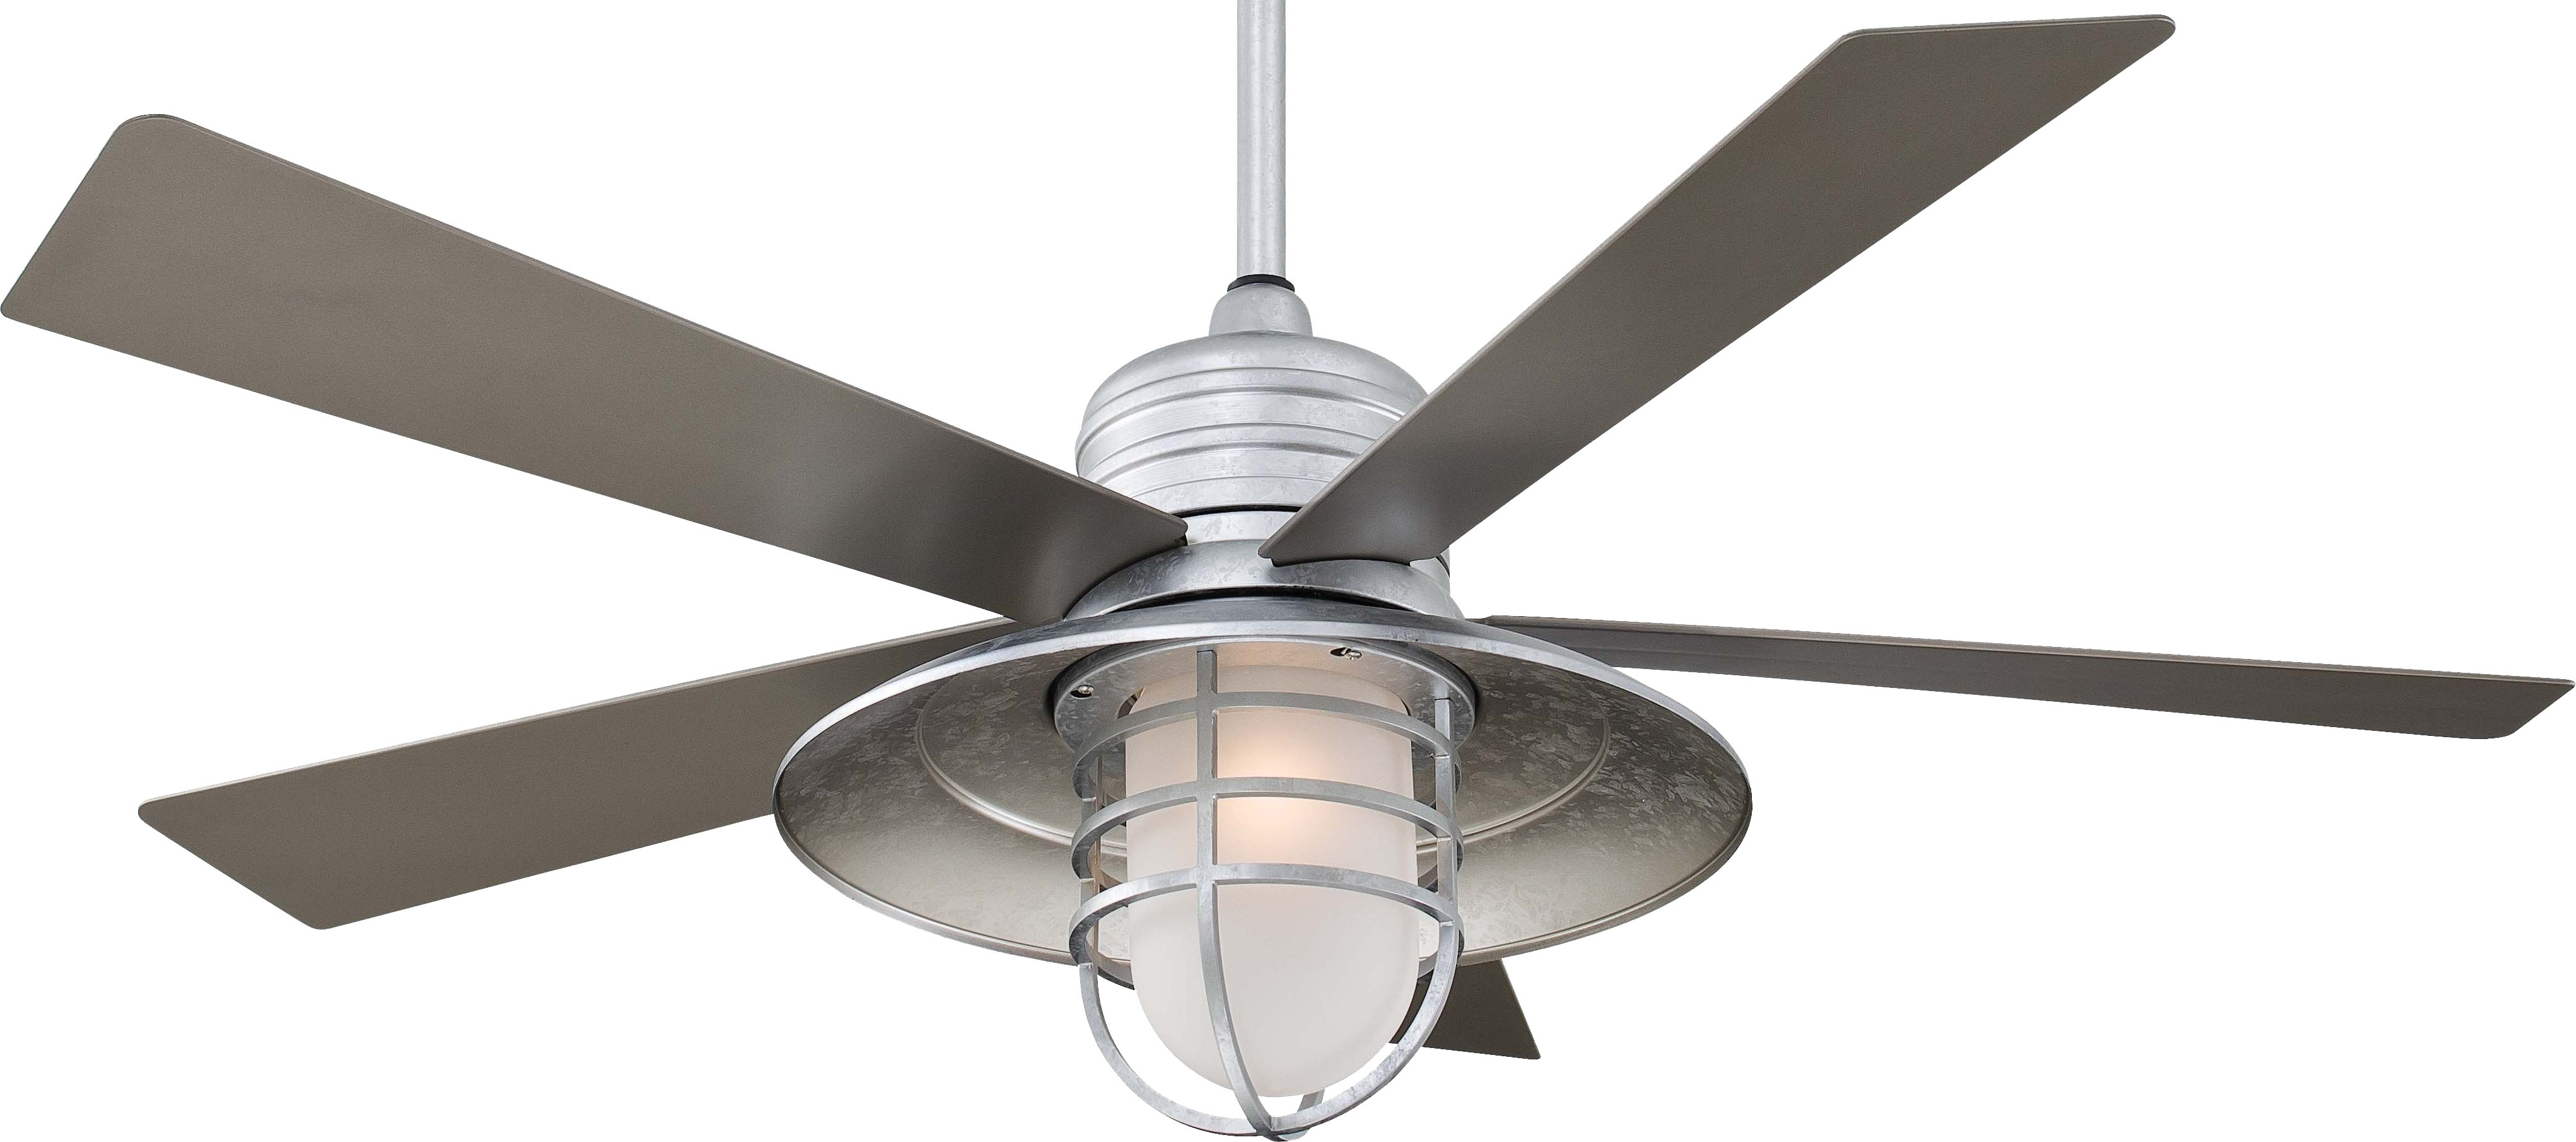 2019 Wet Rated Ceiling Fans With Light Outstanding Outdoor Ceiling Fan Throughout Wet Rated Outdoor Ceiling Fans With Light (Gallery 8 of 20)